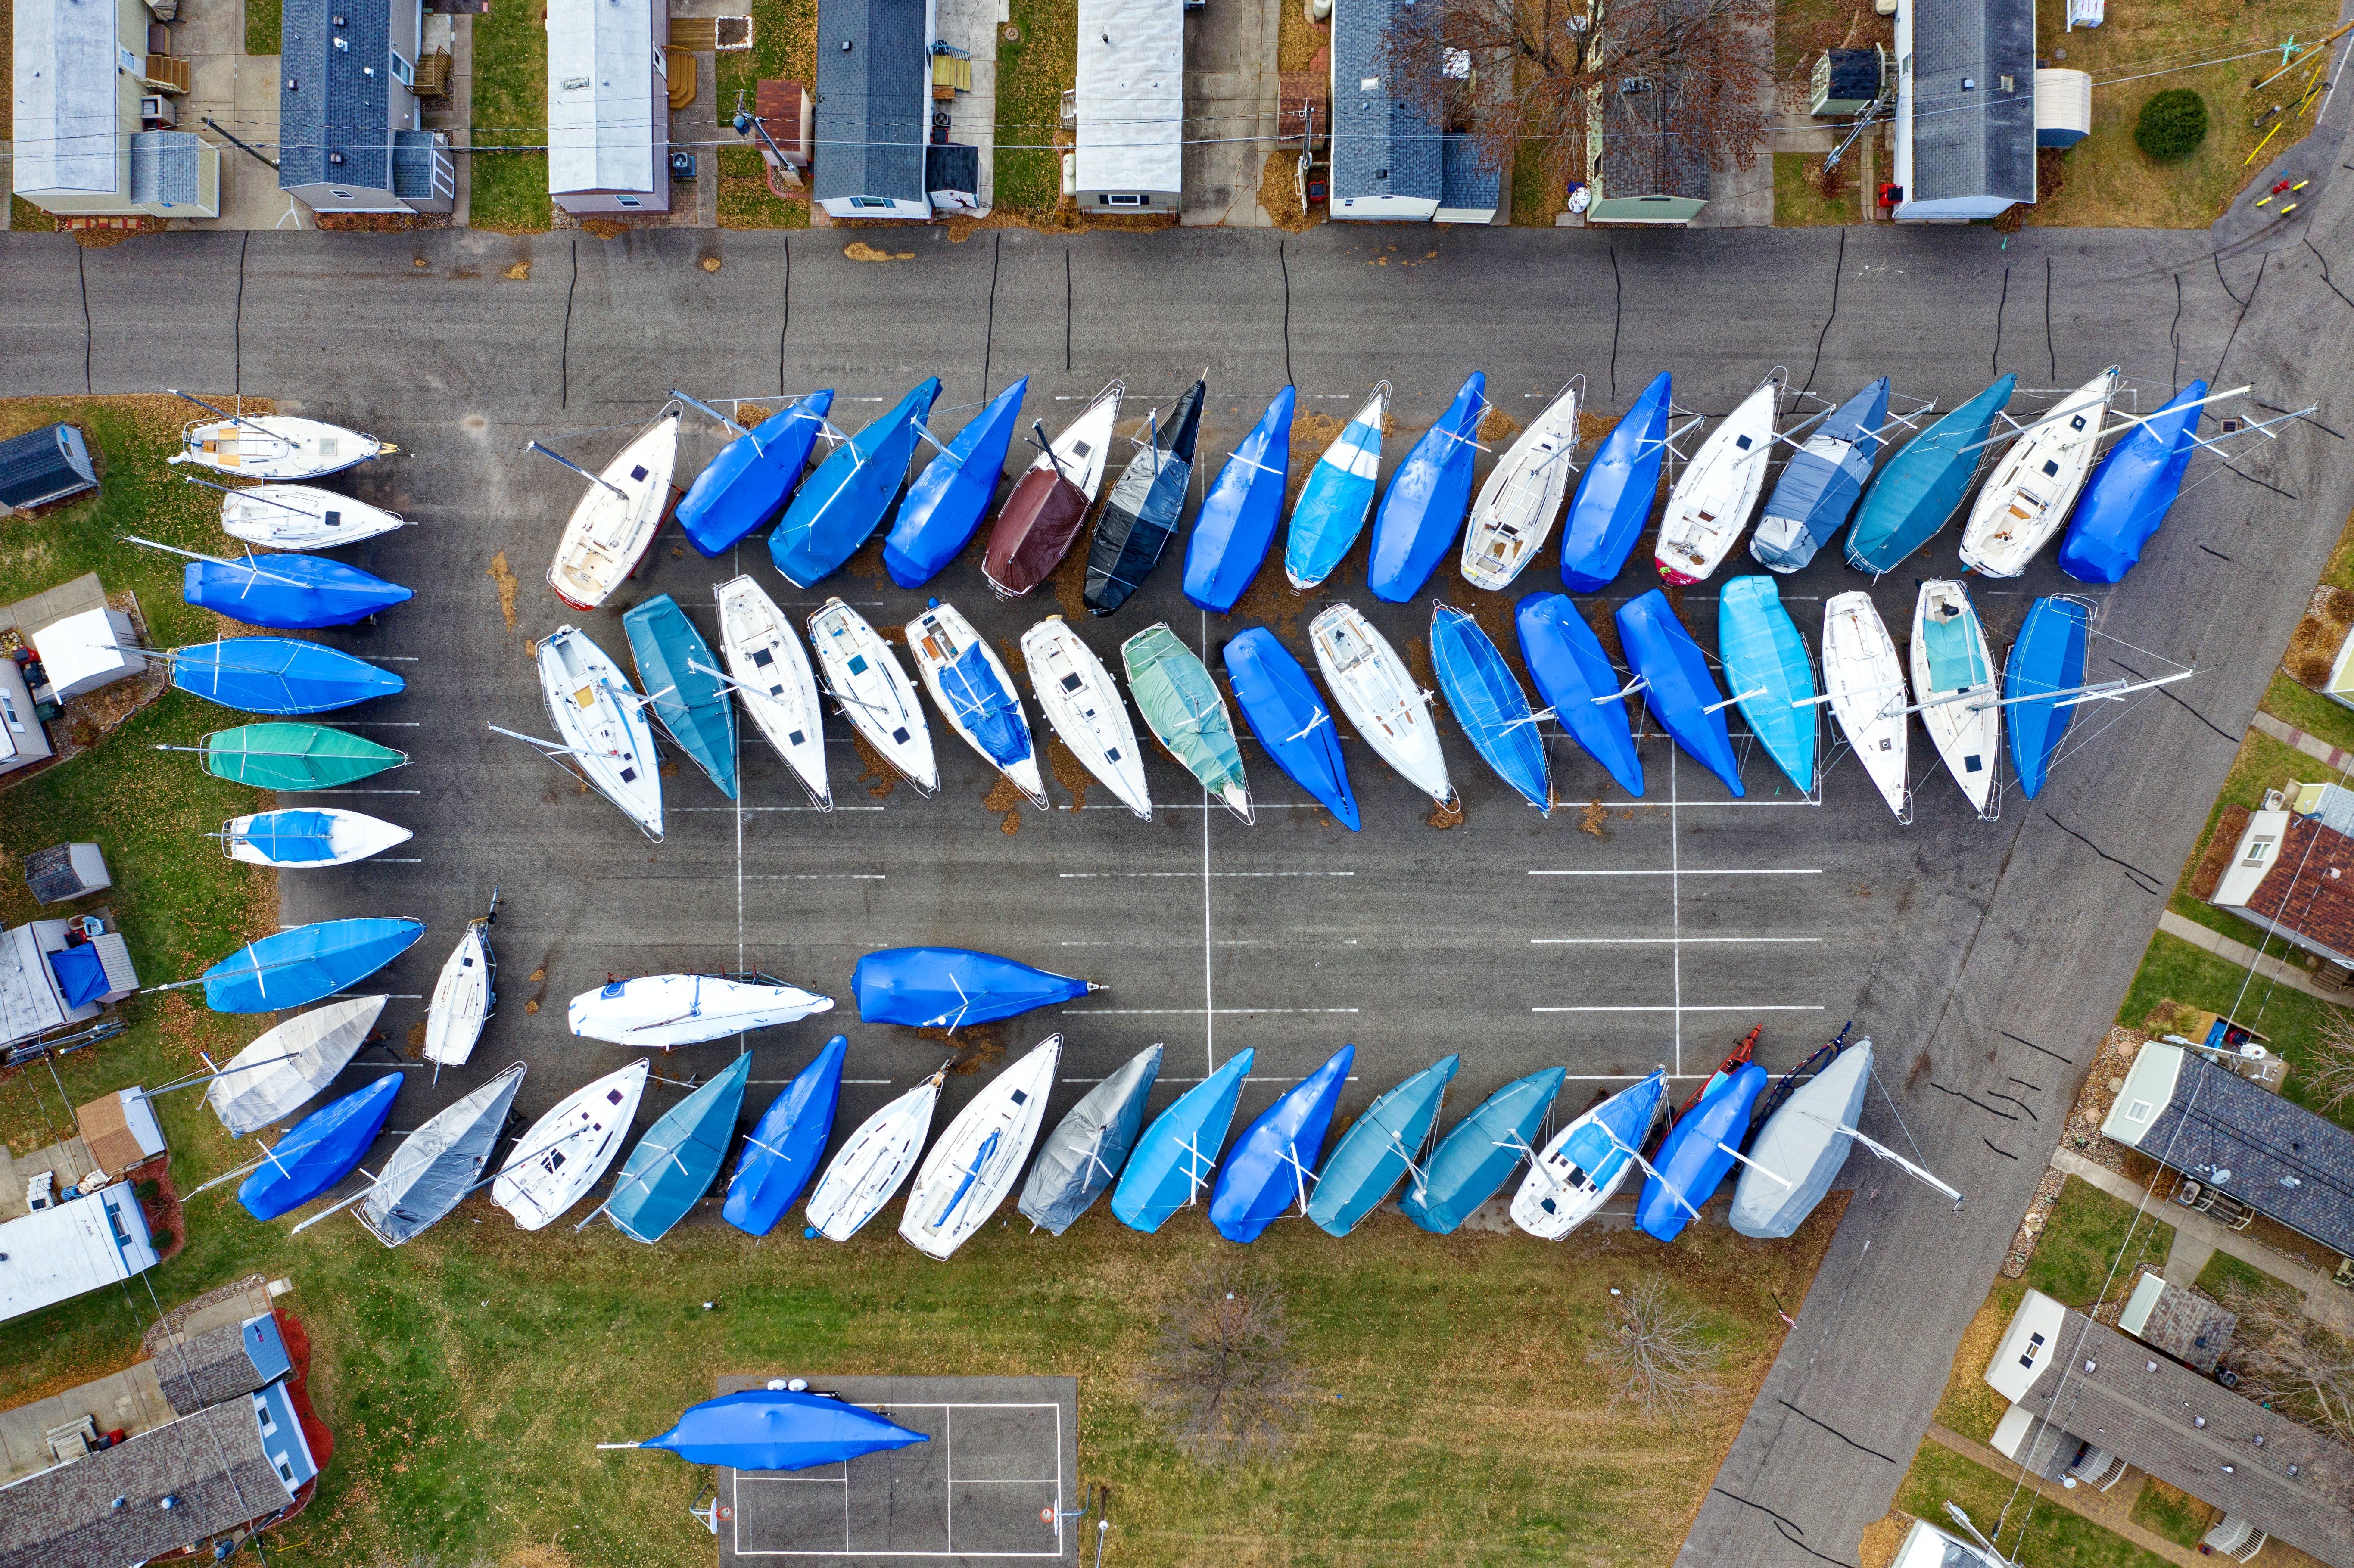 Parked Blue and White Kayaks